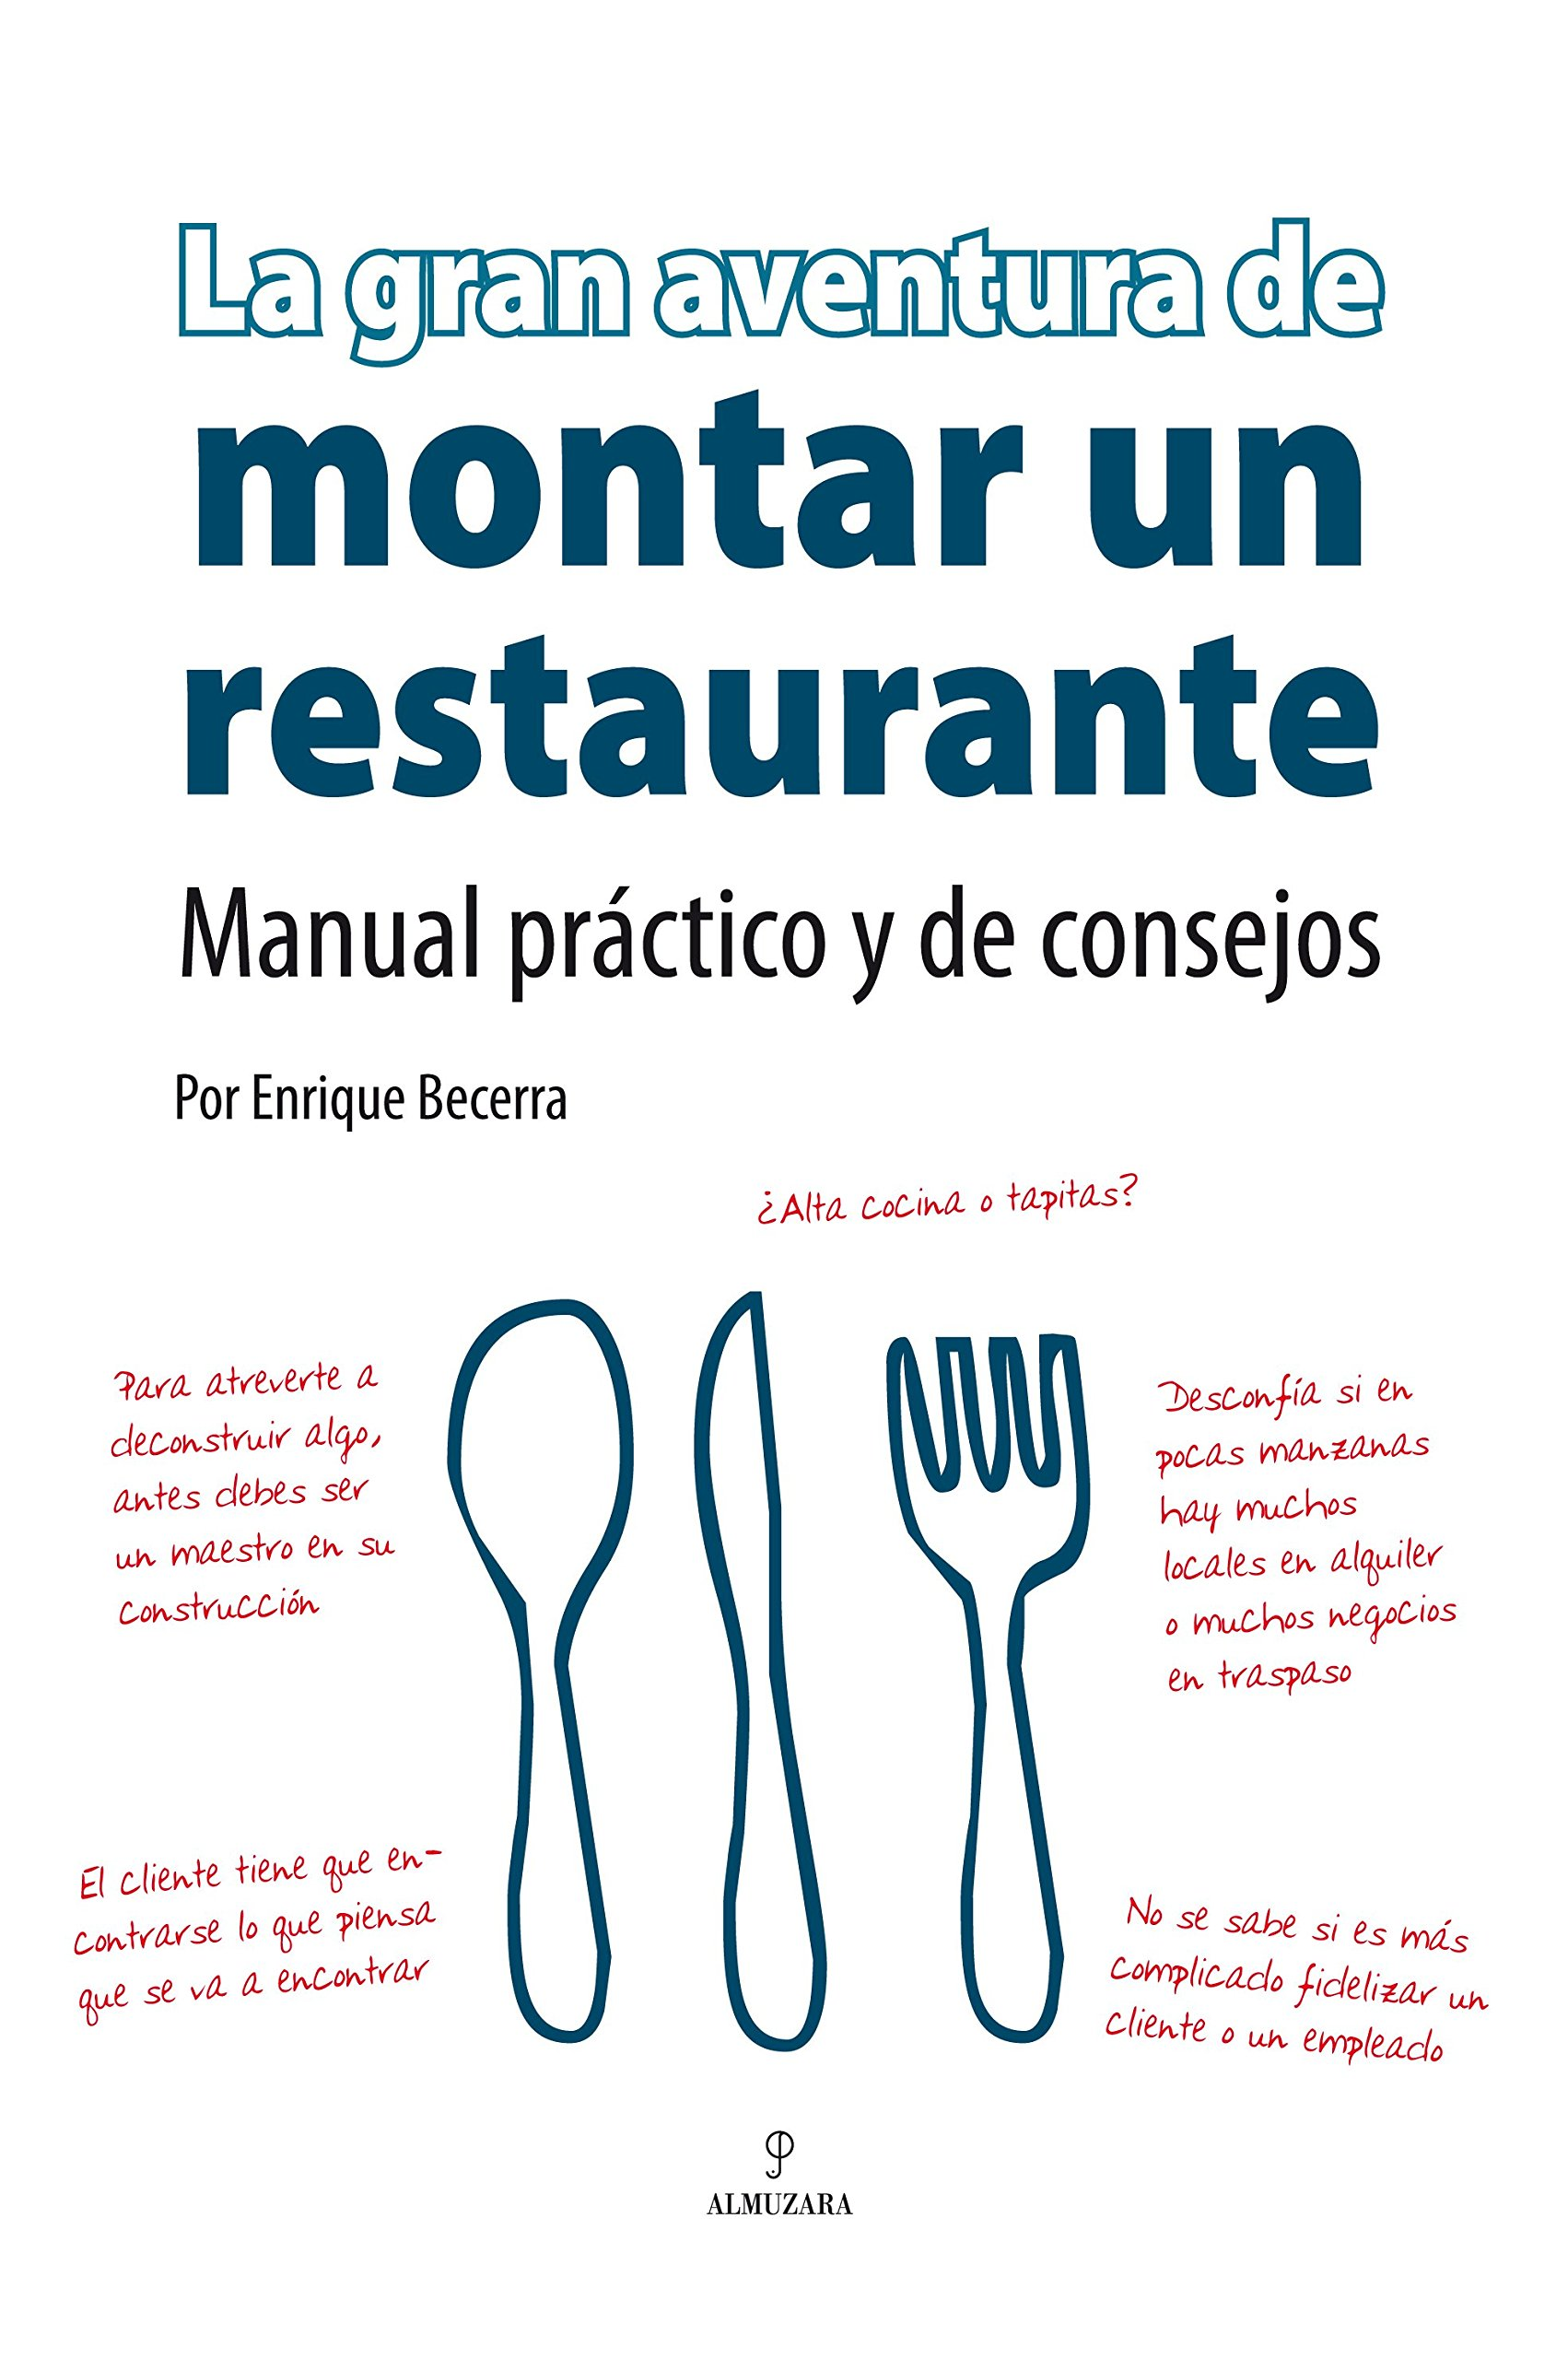 La gran aventura de montar un restaurante (Spanish Edition): Enrique Becerra: 9788496710061: Amazon.com: Books